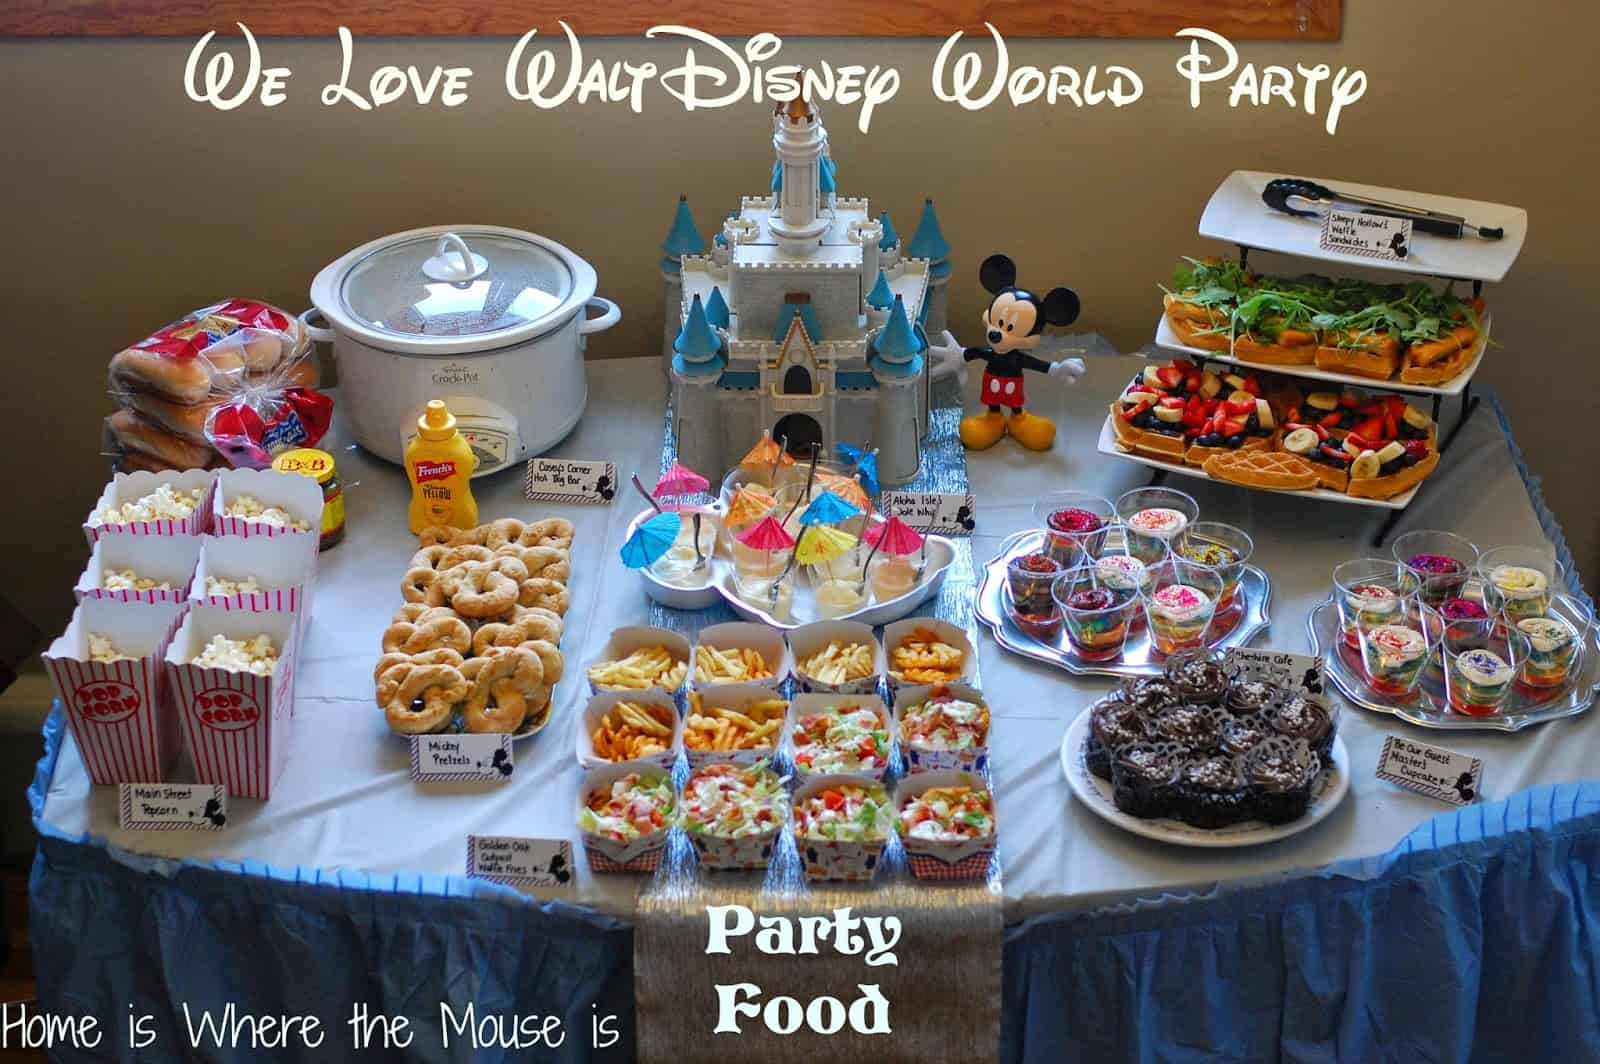 We Love Walt Disney World Party Party Food Adventures